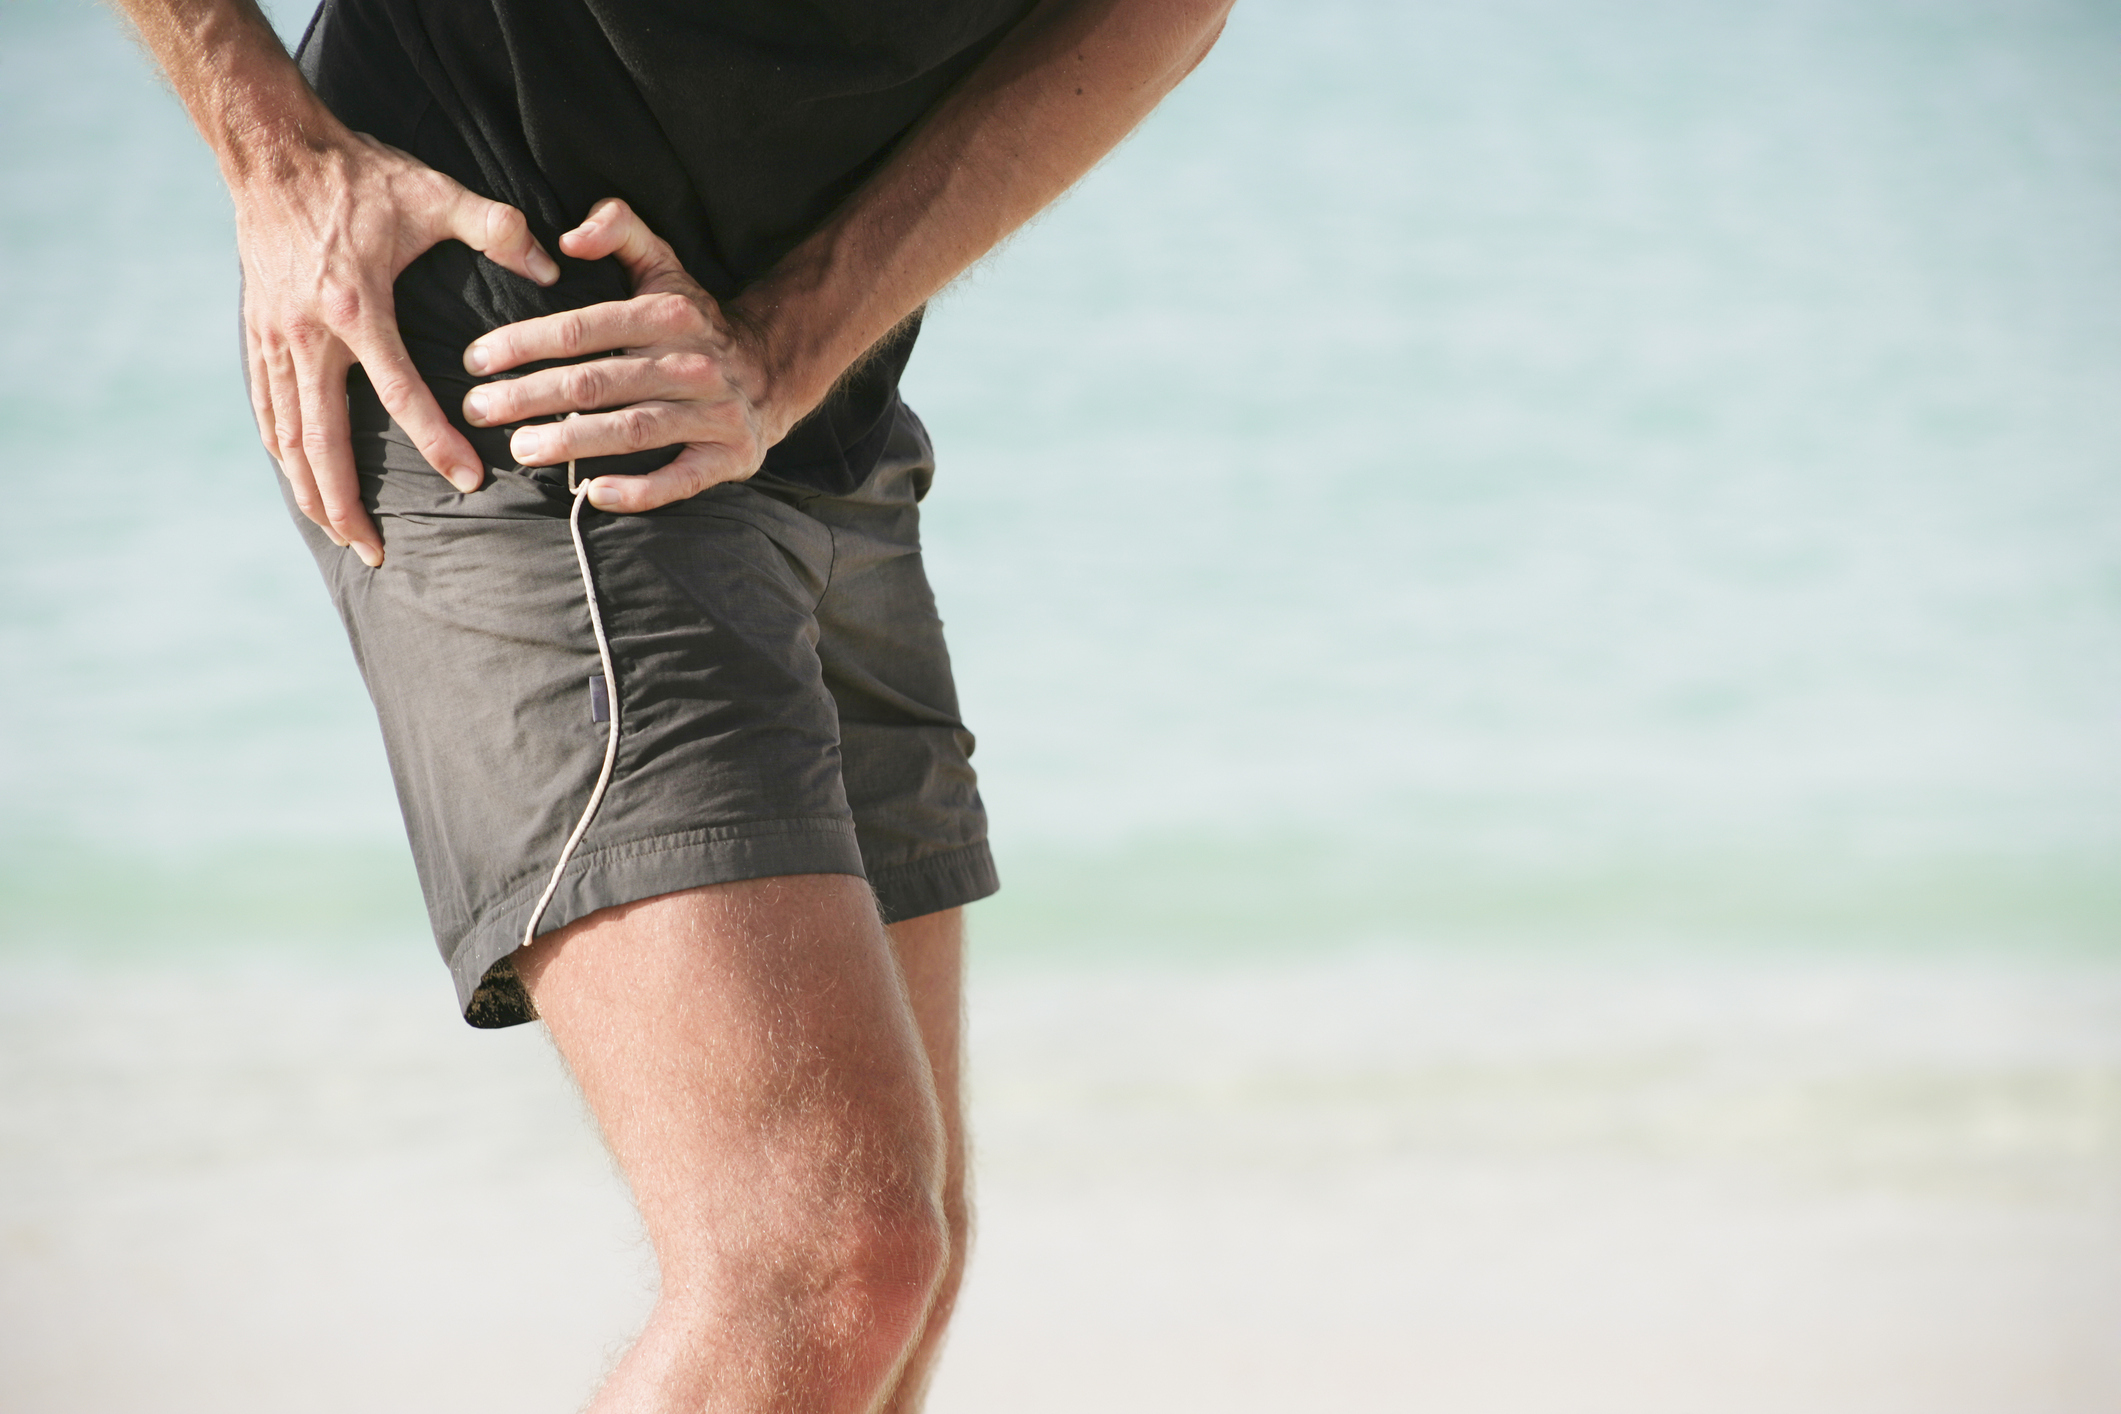 Can Stem Cell Therapy Help With Hip Pain Stem Cell Therapy Blog